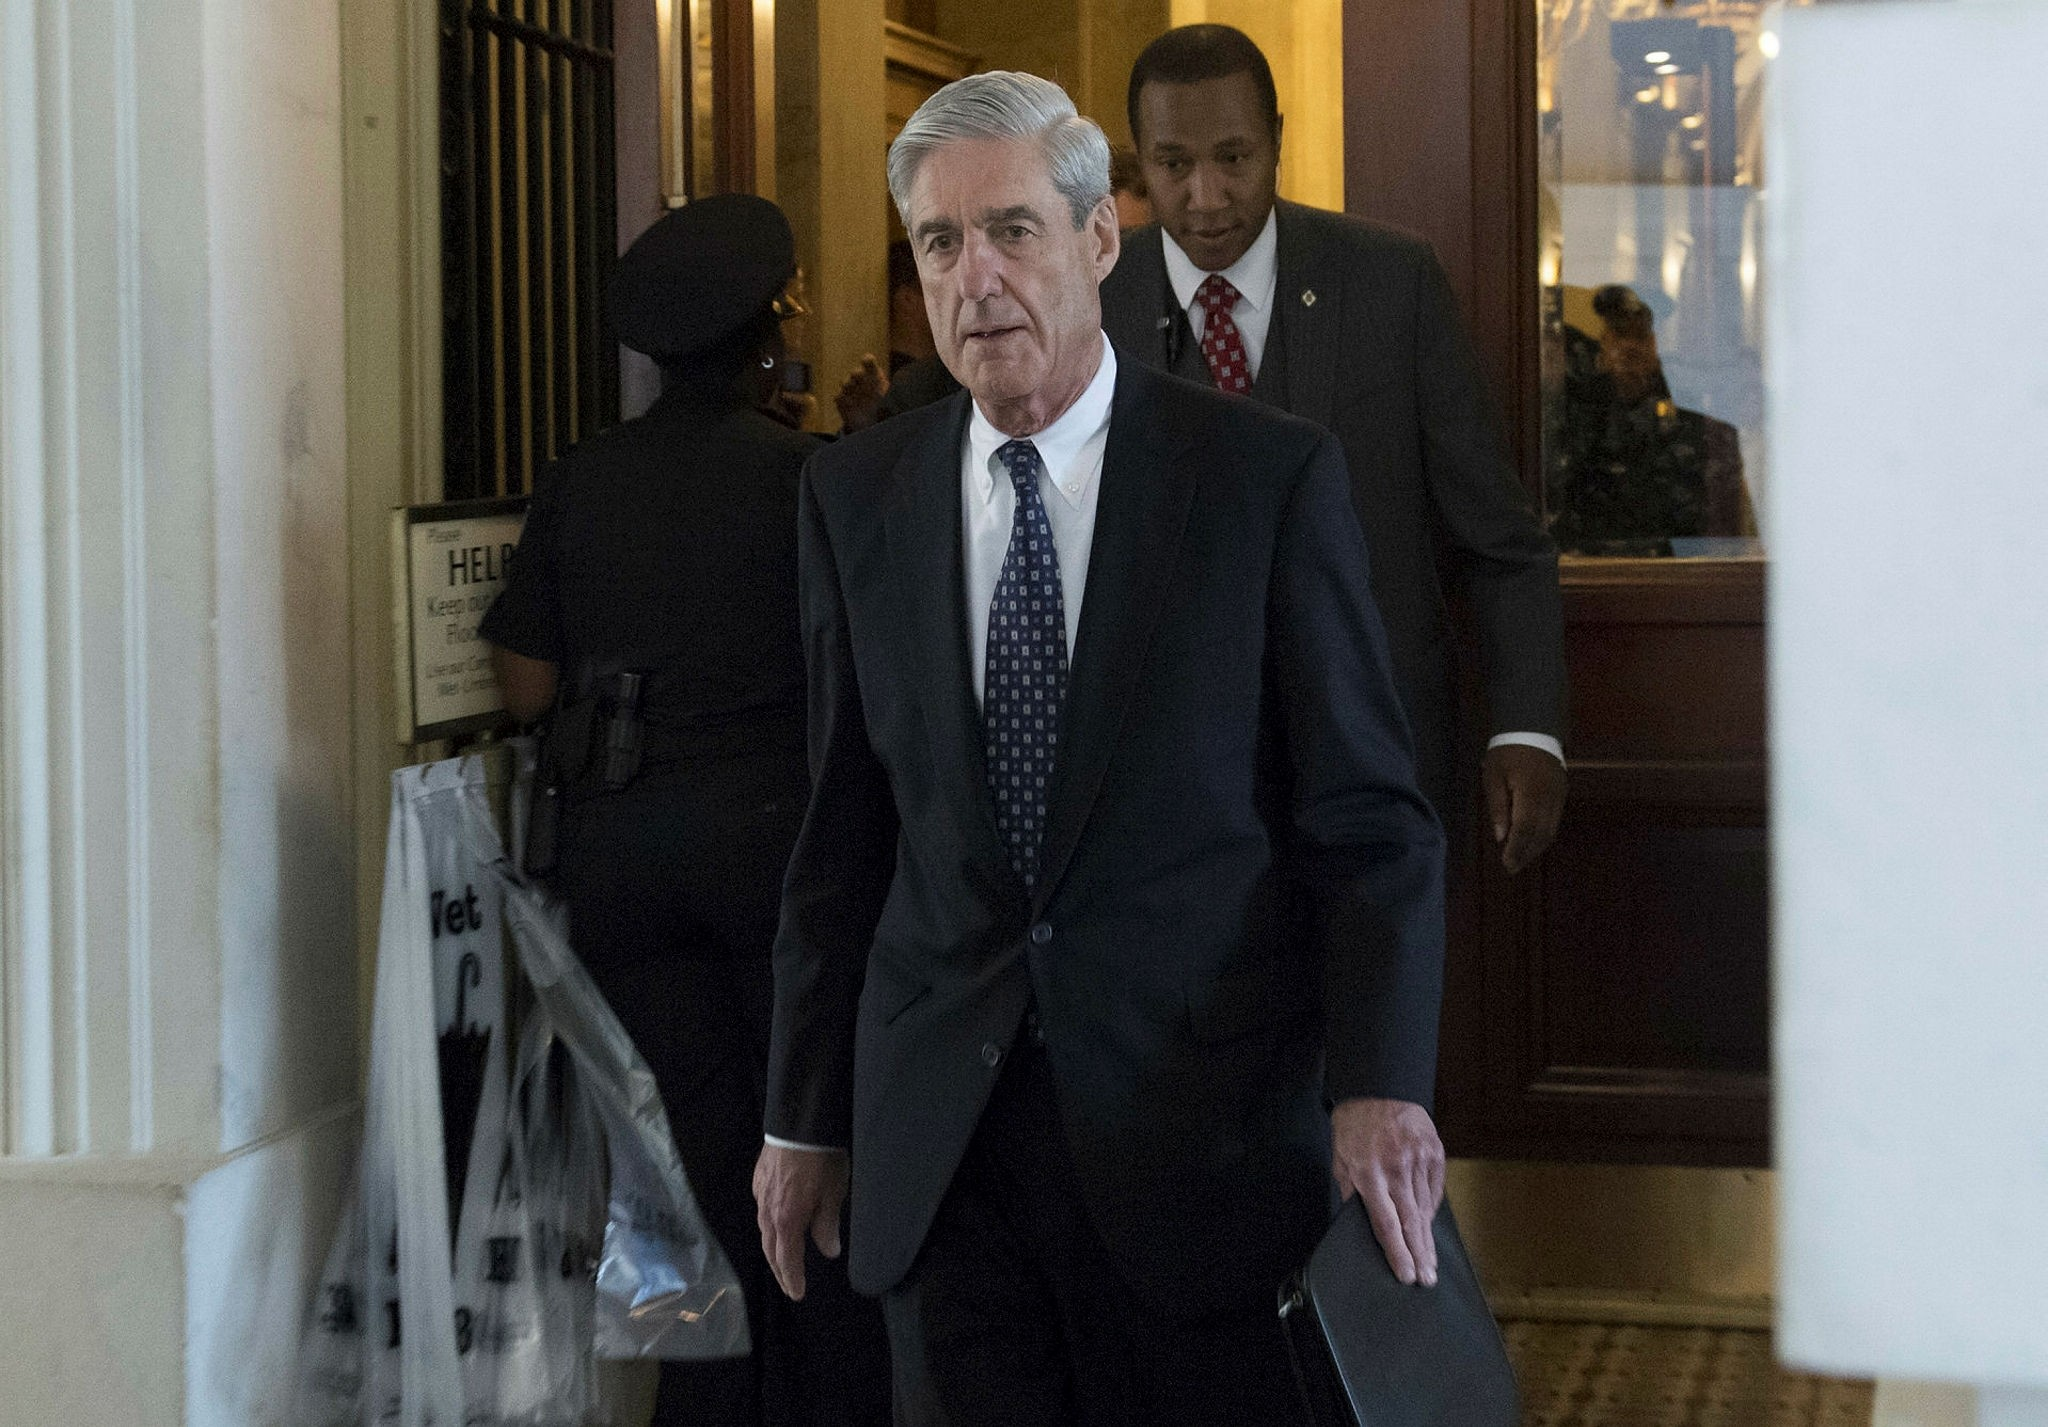 This file photo shows Former FBI Director Robert Mueller, special counsel on the Russian investigation, following a meeting with members of the US Senate Judiciary Committee at the US Capitol in Washington, DC on June 21, 2017. (AFP Photo)